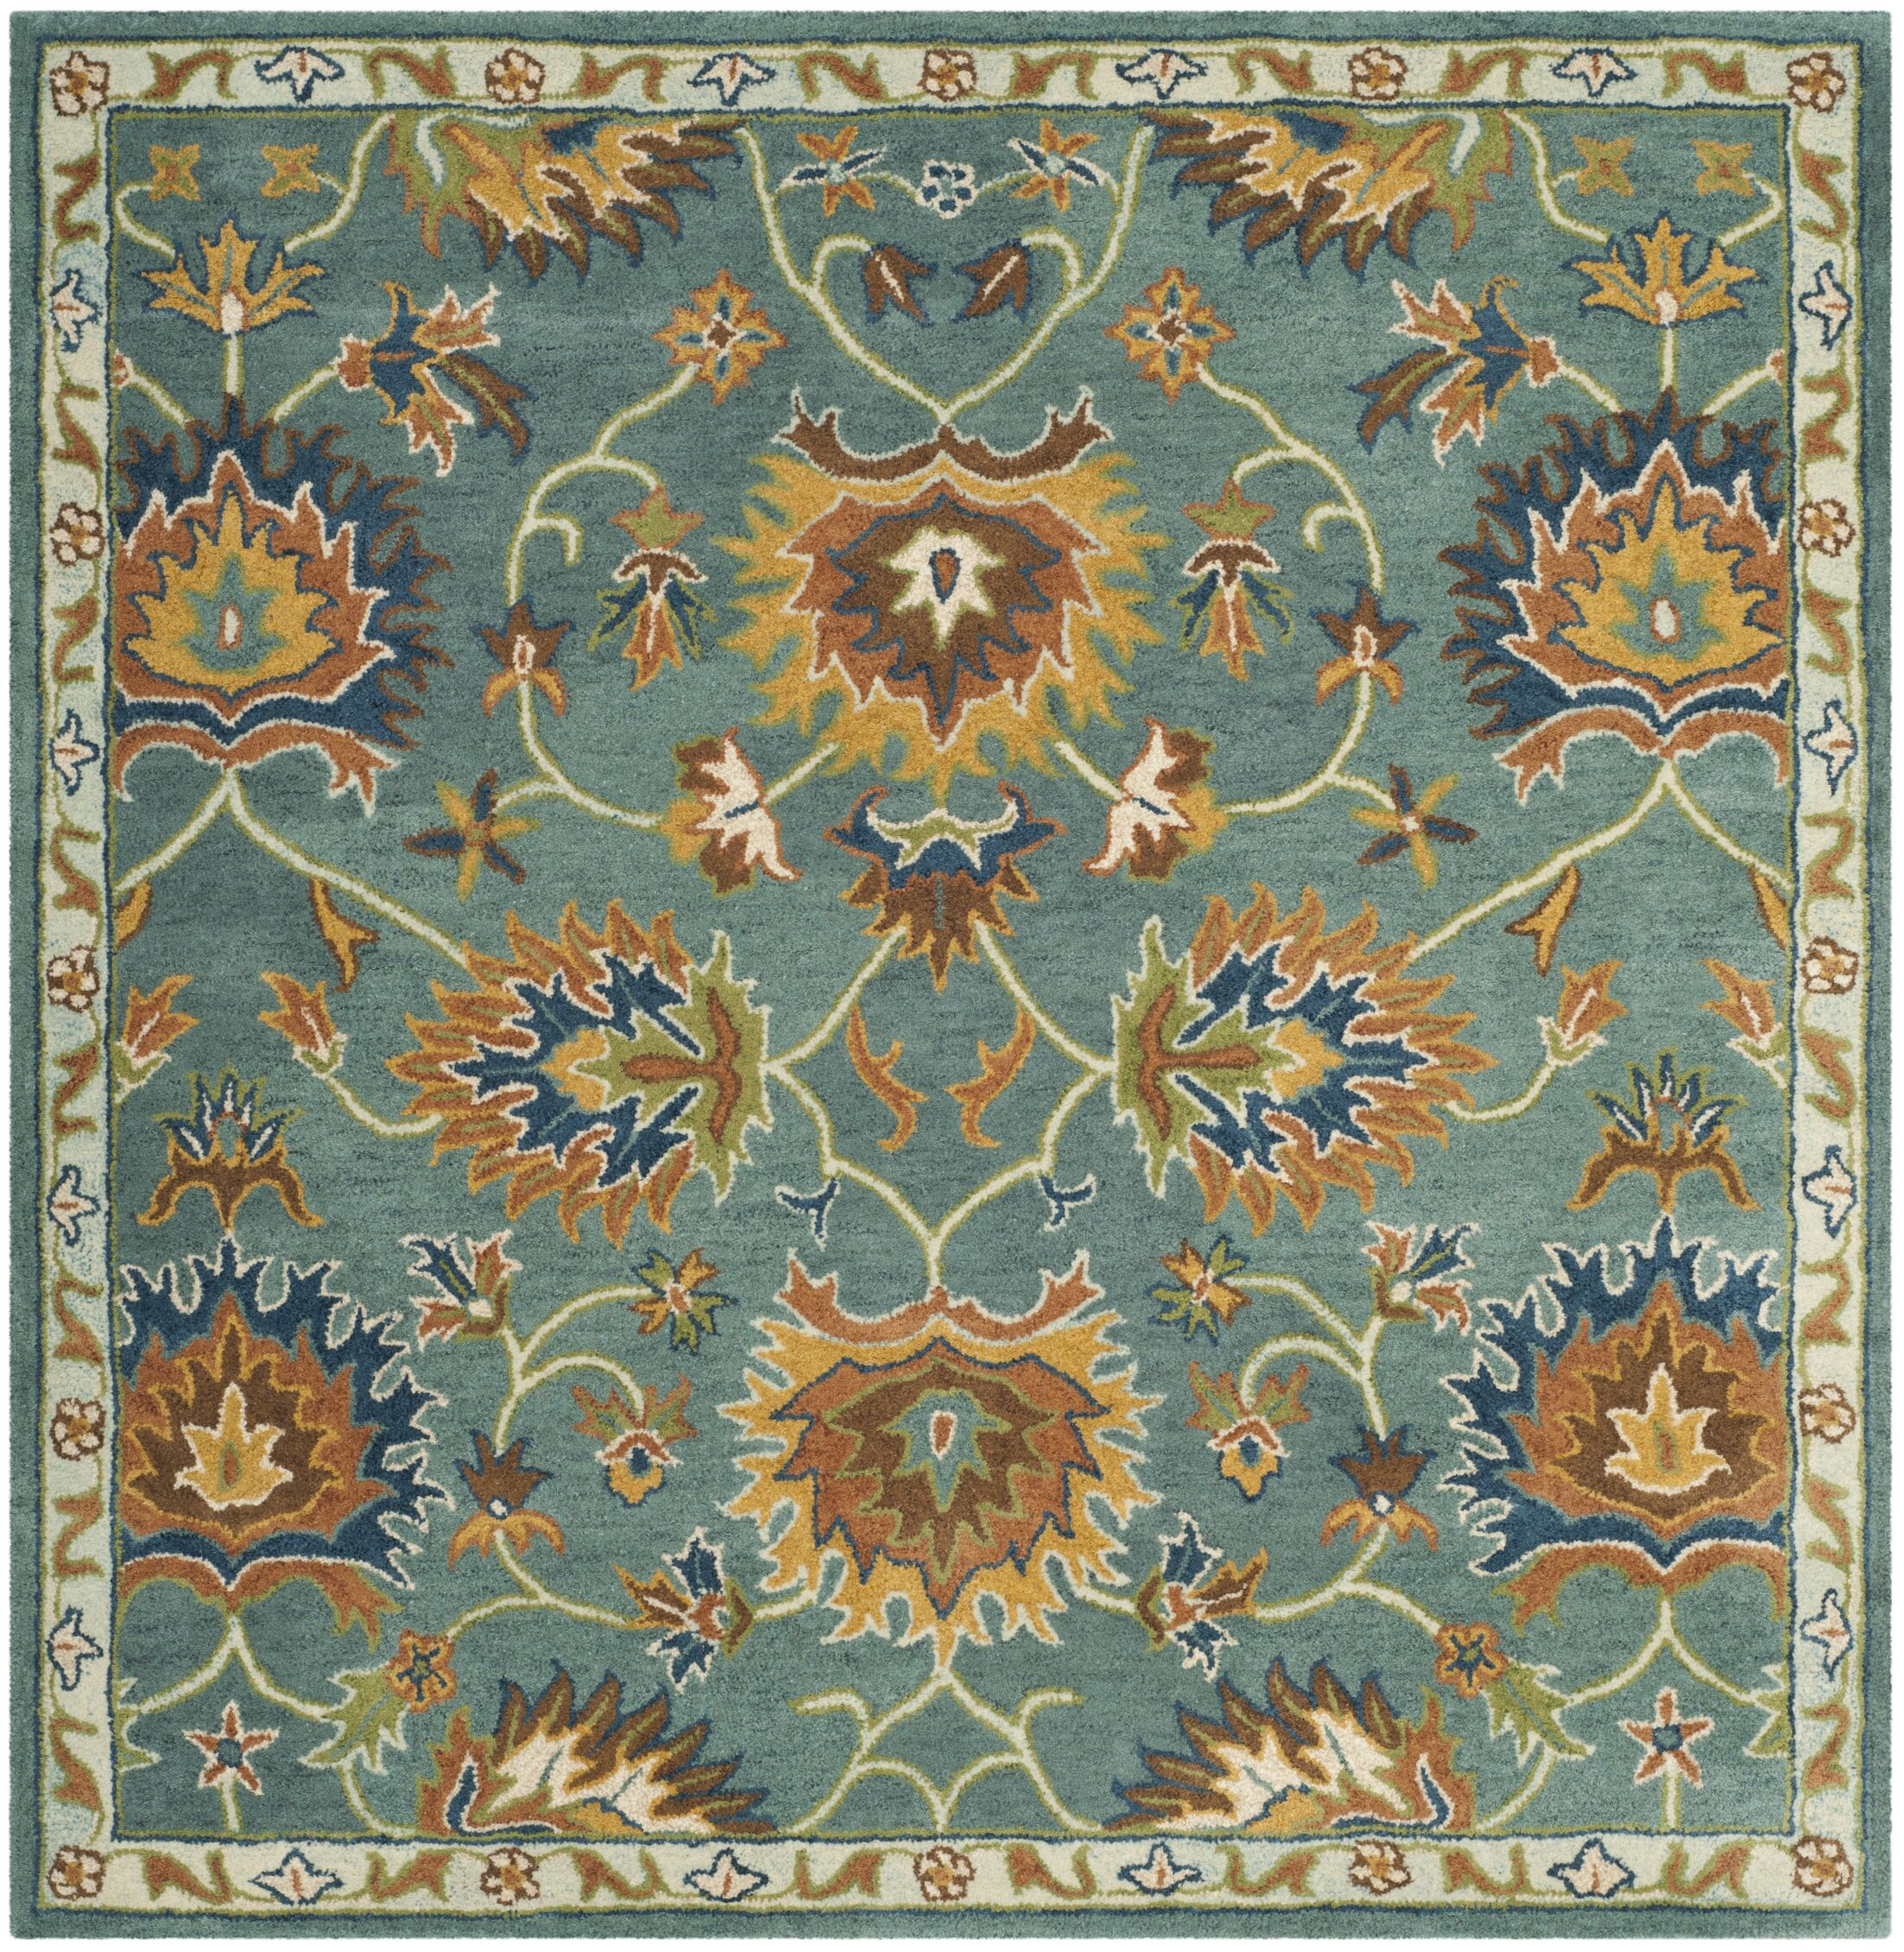 Cranmore Hand-Tufted Light Blue/Yellow Area Rug Rug Size: Square 6'